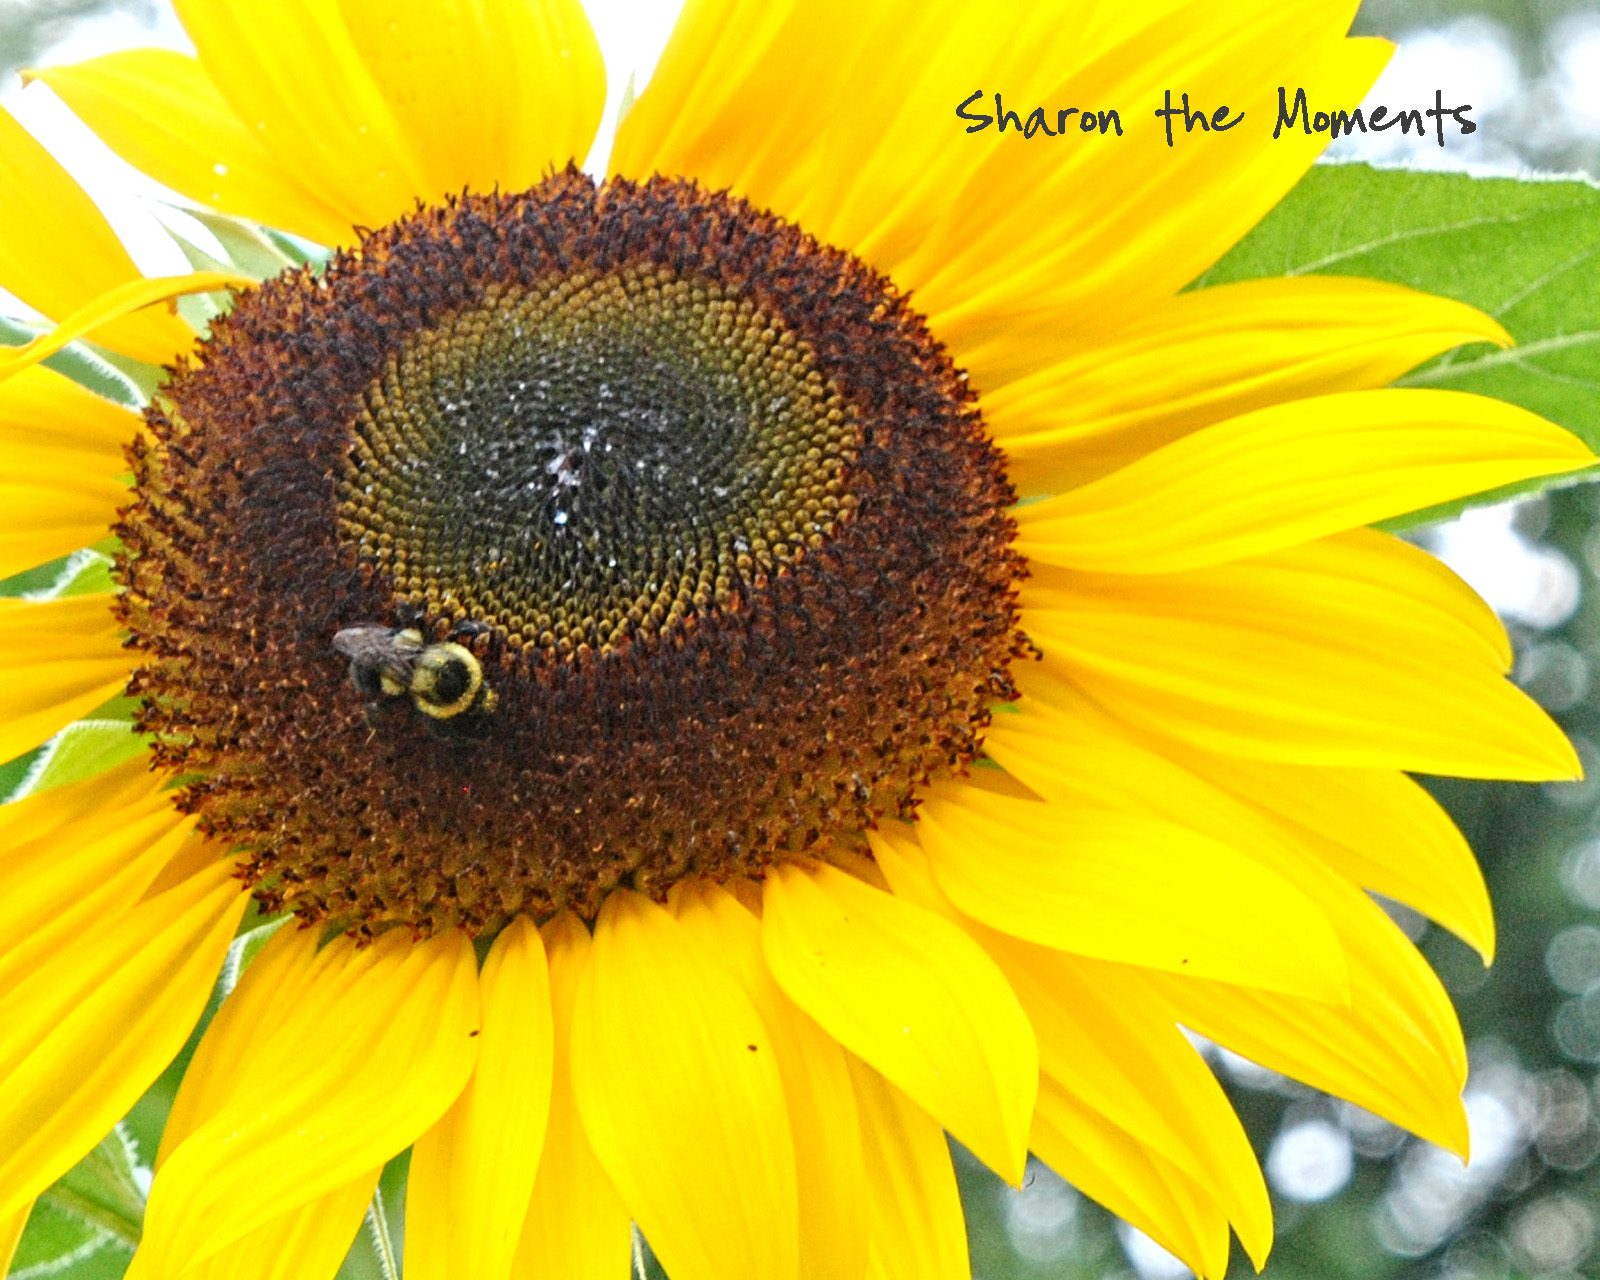 Favorite Photo Friday Summer Sunflowers Sharon the Moments blog